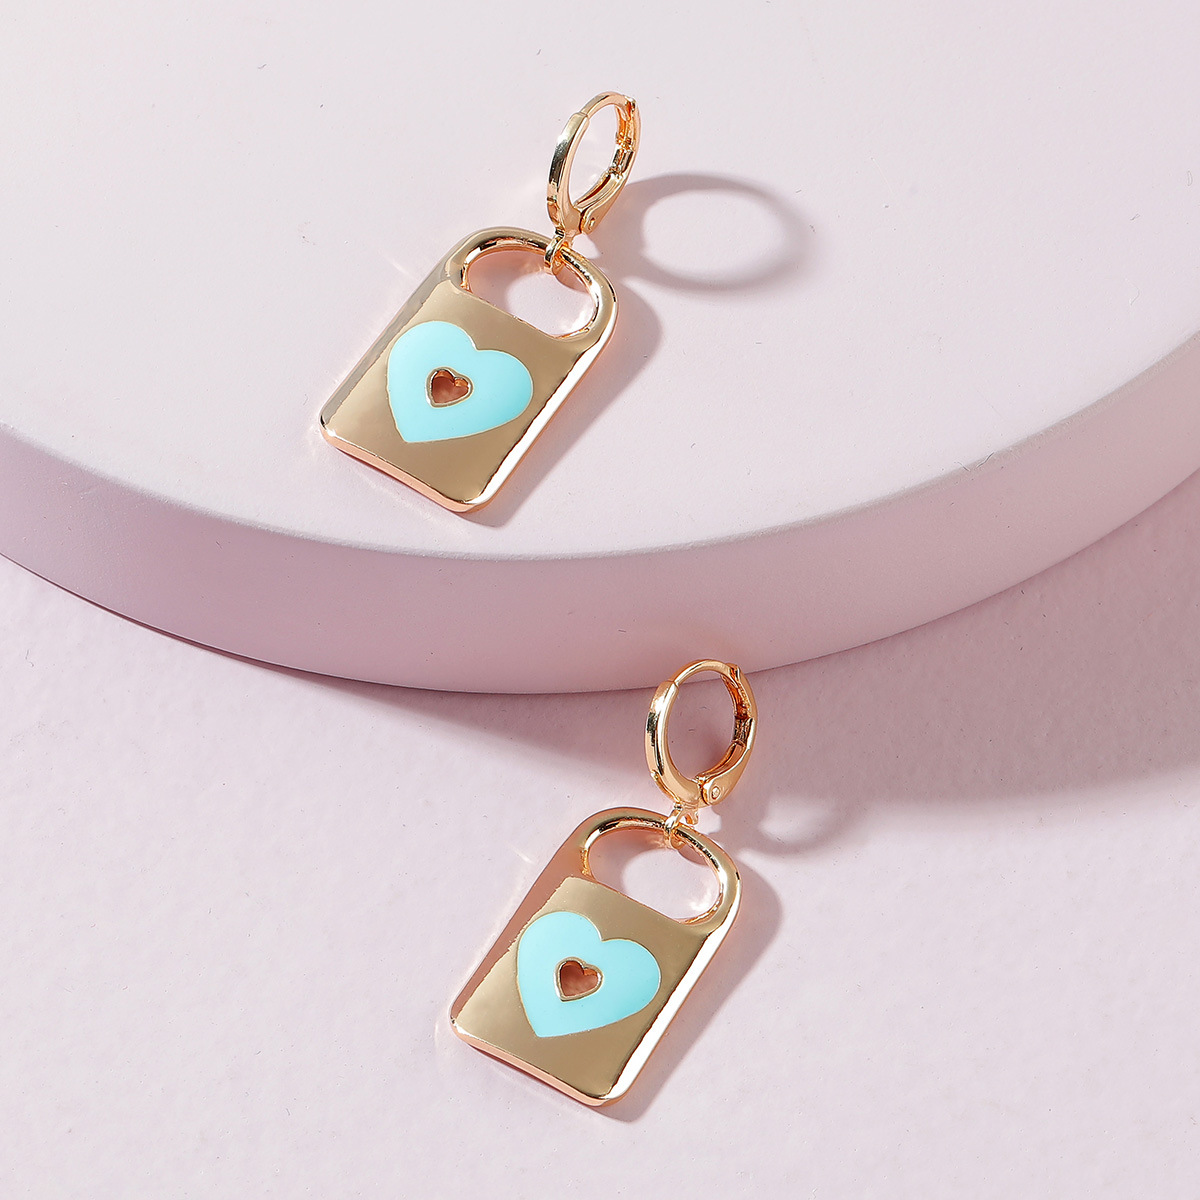 Stylish Huggie Earrings with Heart Lock Pendant for Sweet-Looking Outfits